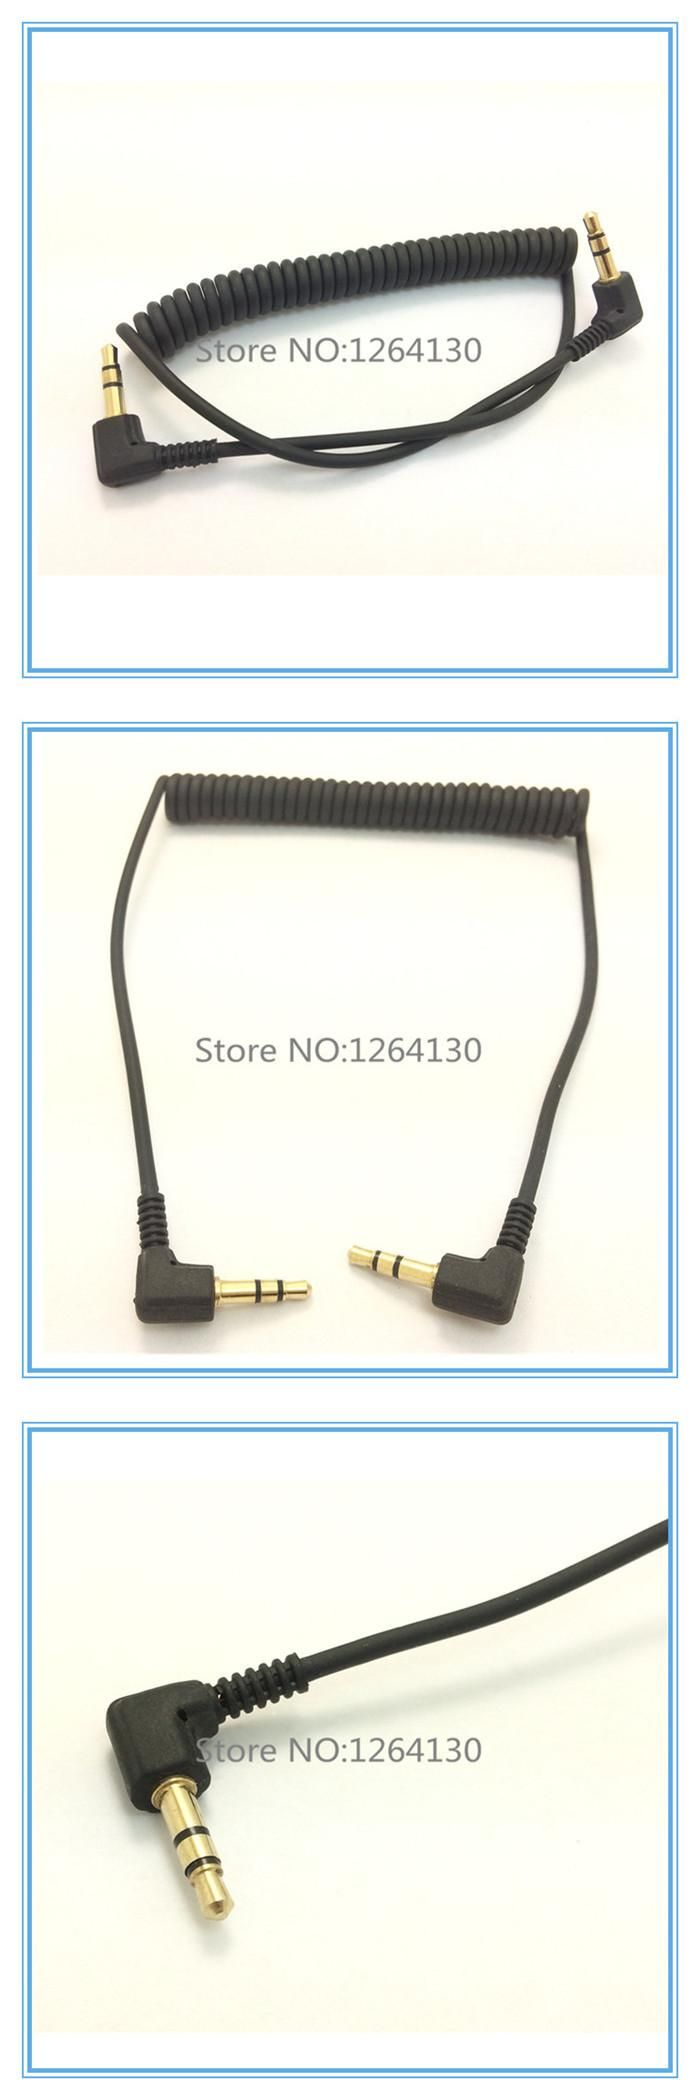 [Visit to Buy] Spring Audio Cable Stereo 3.5mm Double bend 90 degree Male Audio Line Mp3 Mobile Phone to Car Aux Speaker Audio Wire #Advertisement